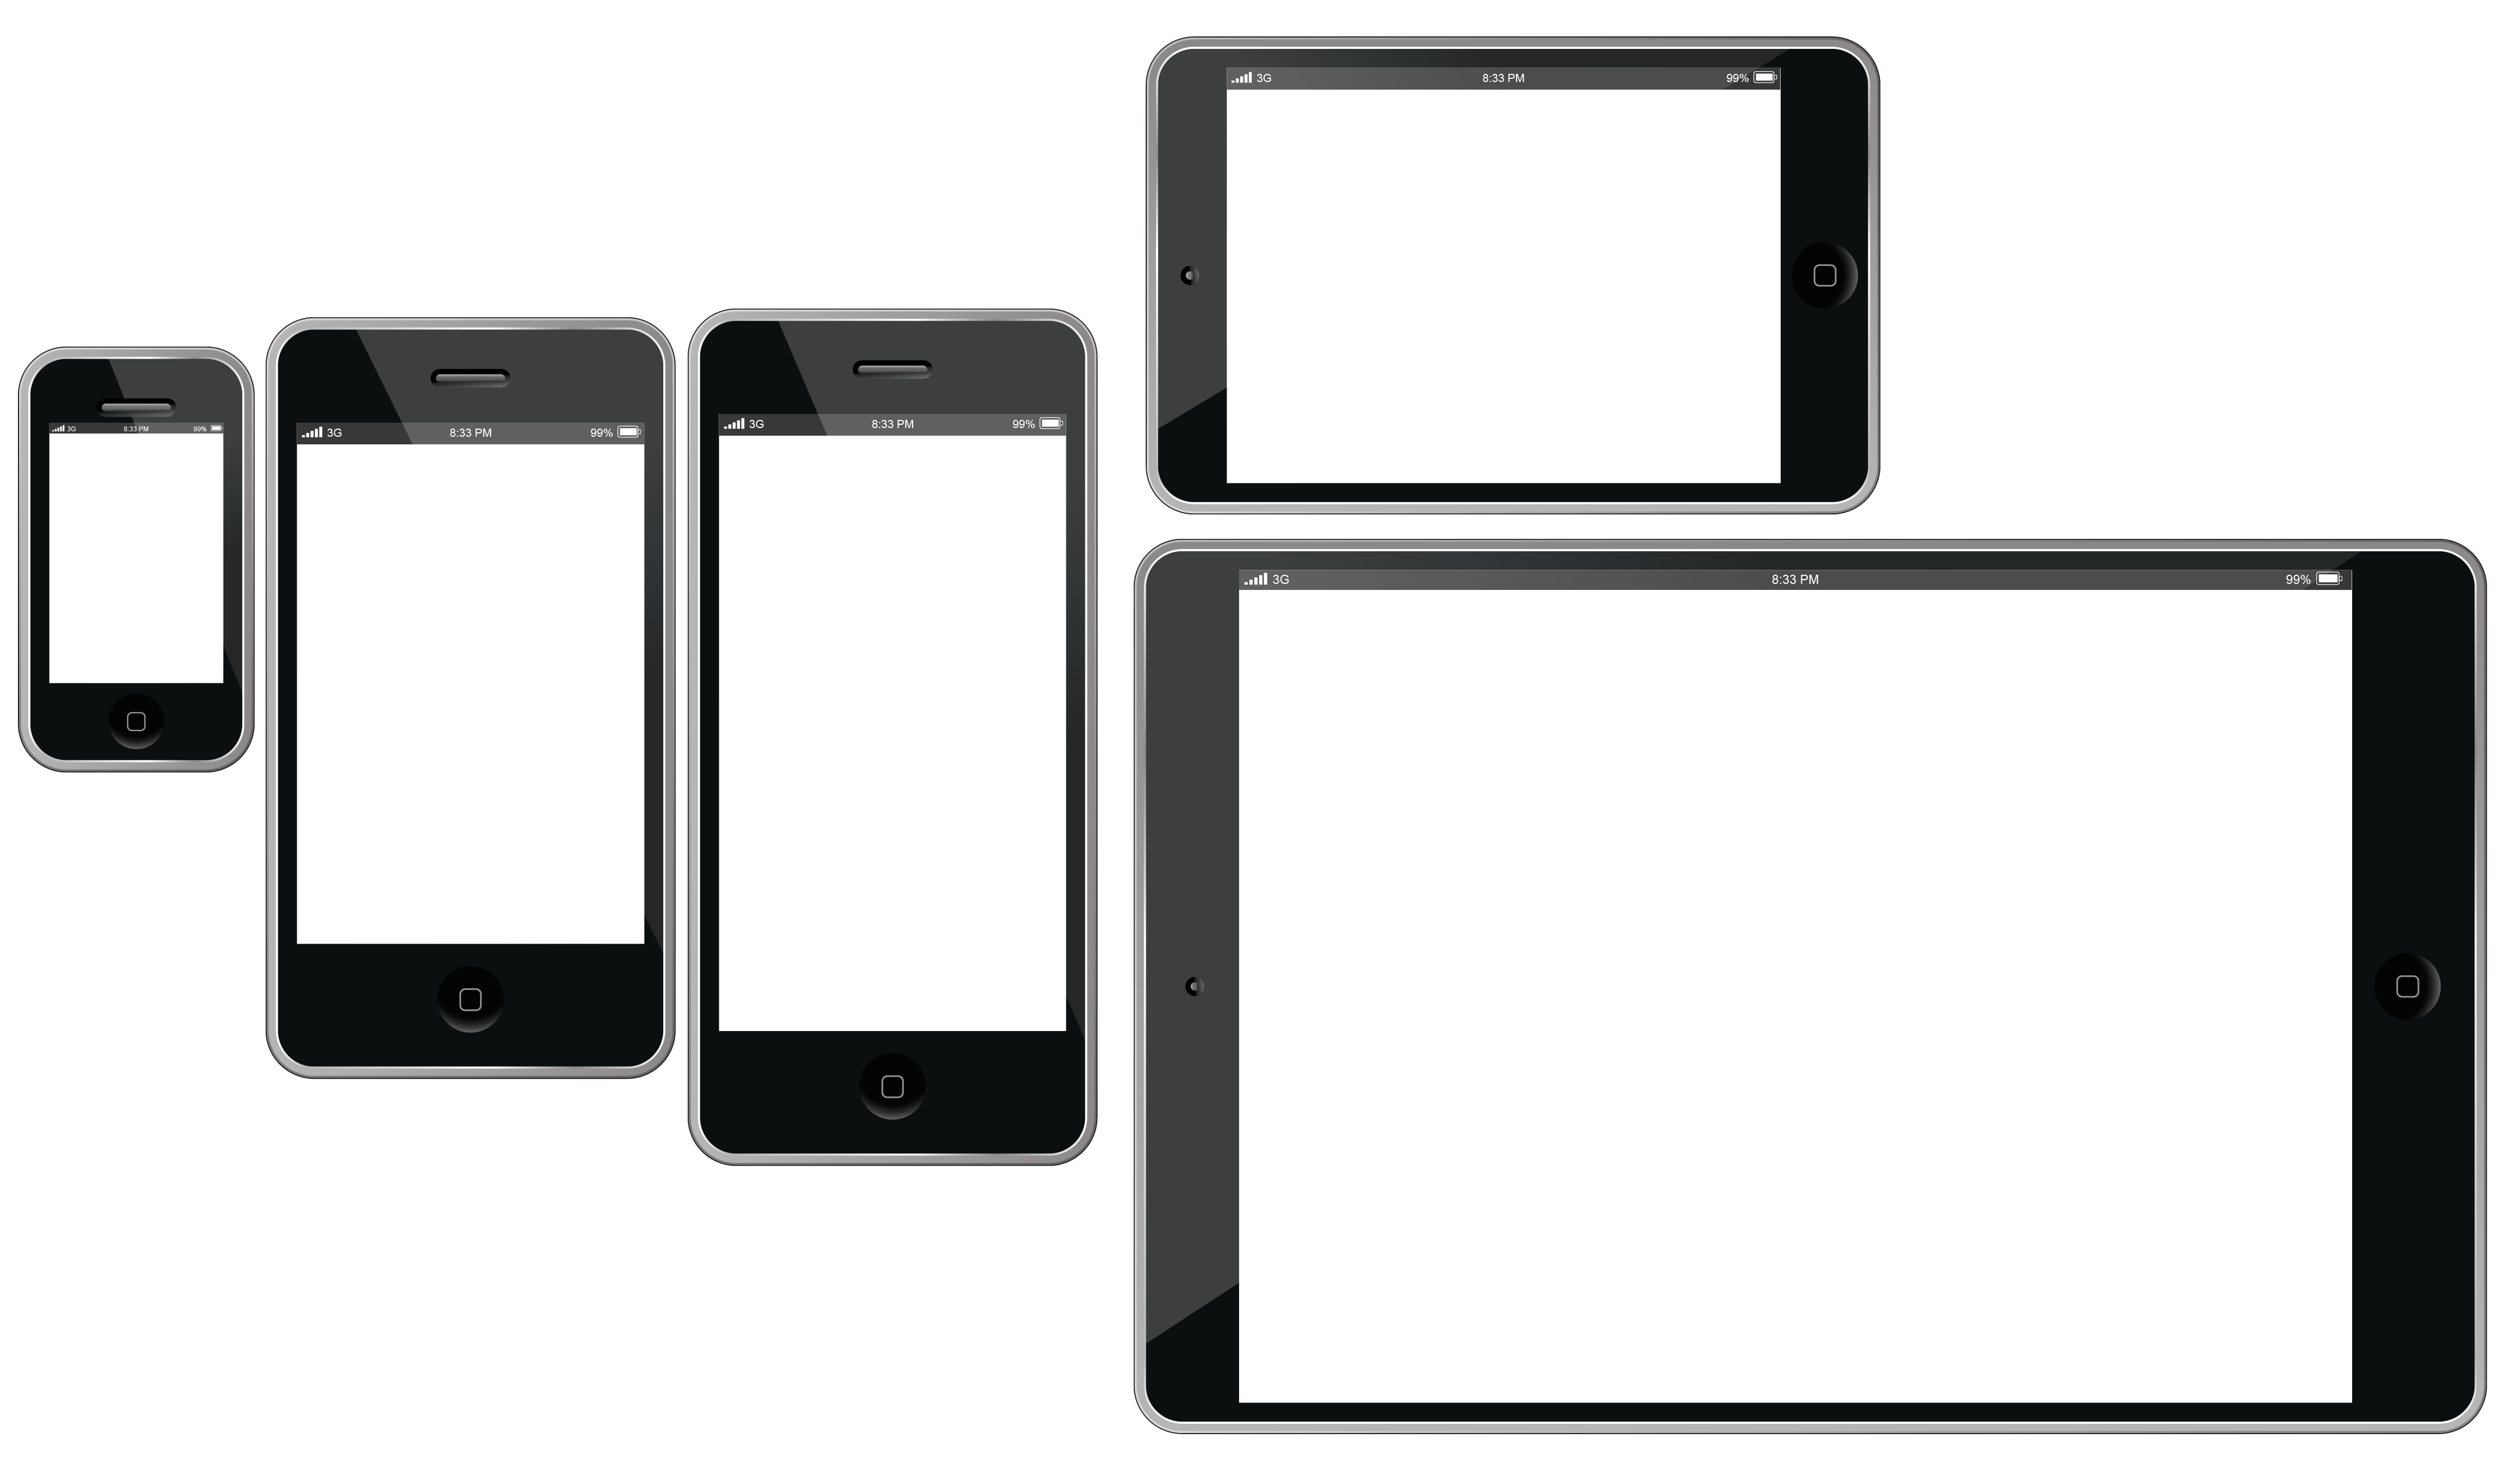 Mobile Device Png - Free Mobile Device Png, Download Free Clip Art, Free Clip Art on ...